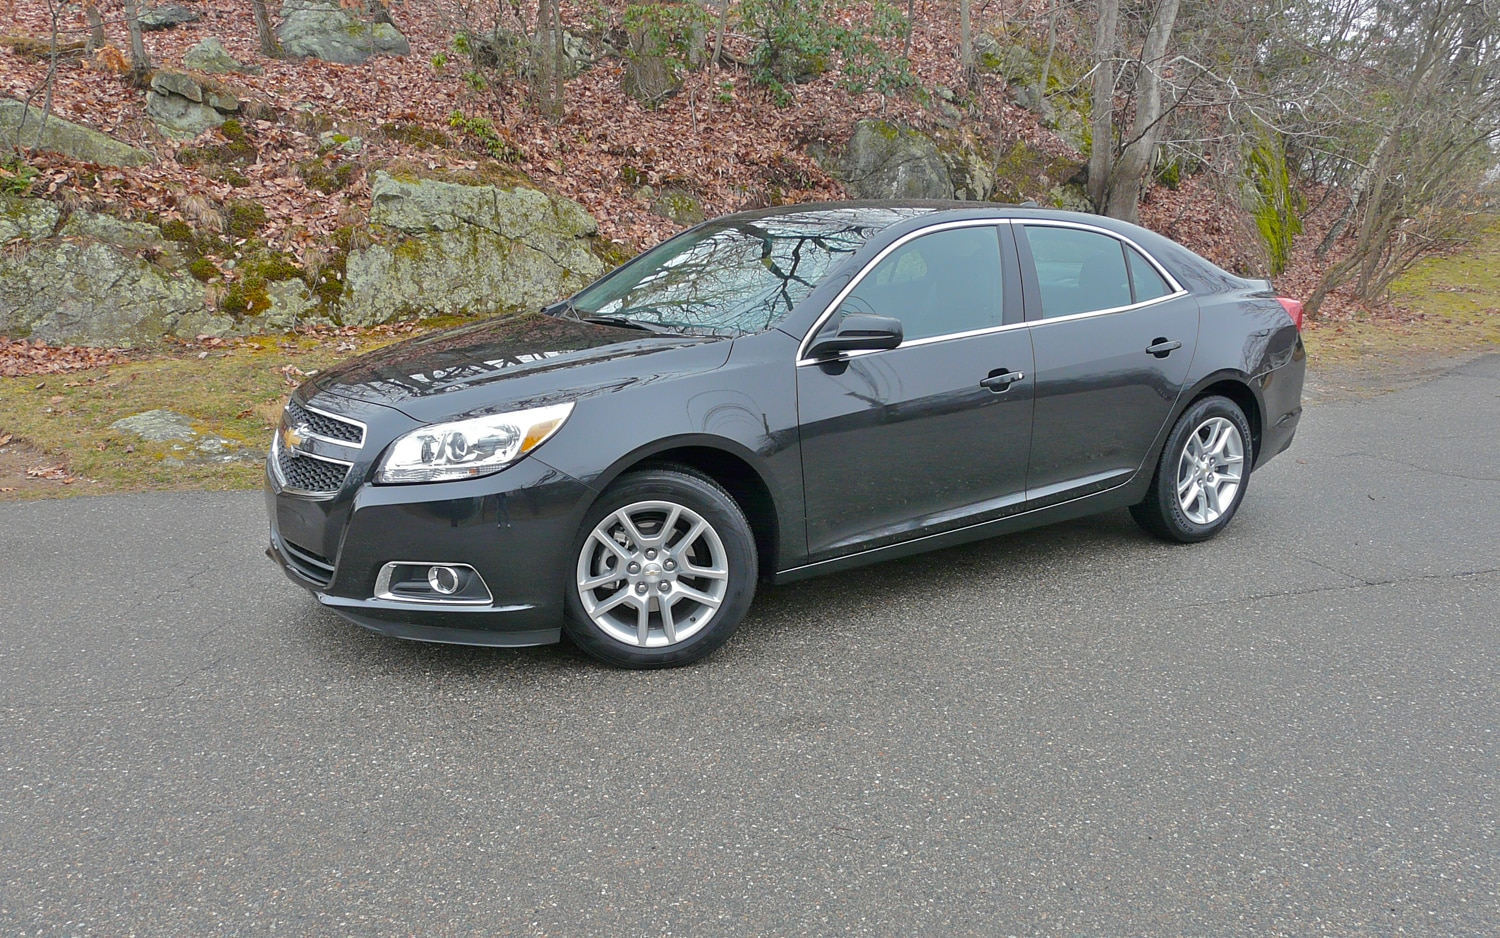 2013 Chevrolet Malibu Eco Front Left Side View1